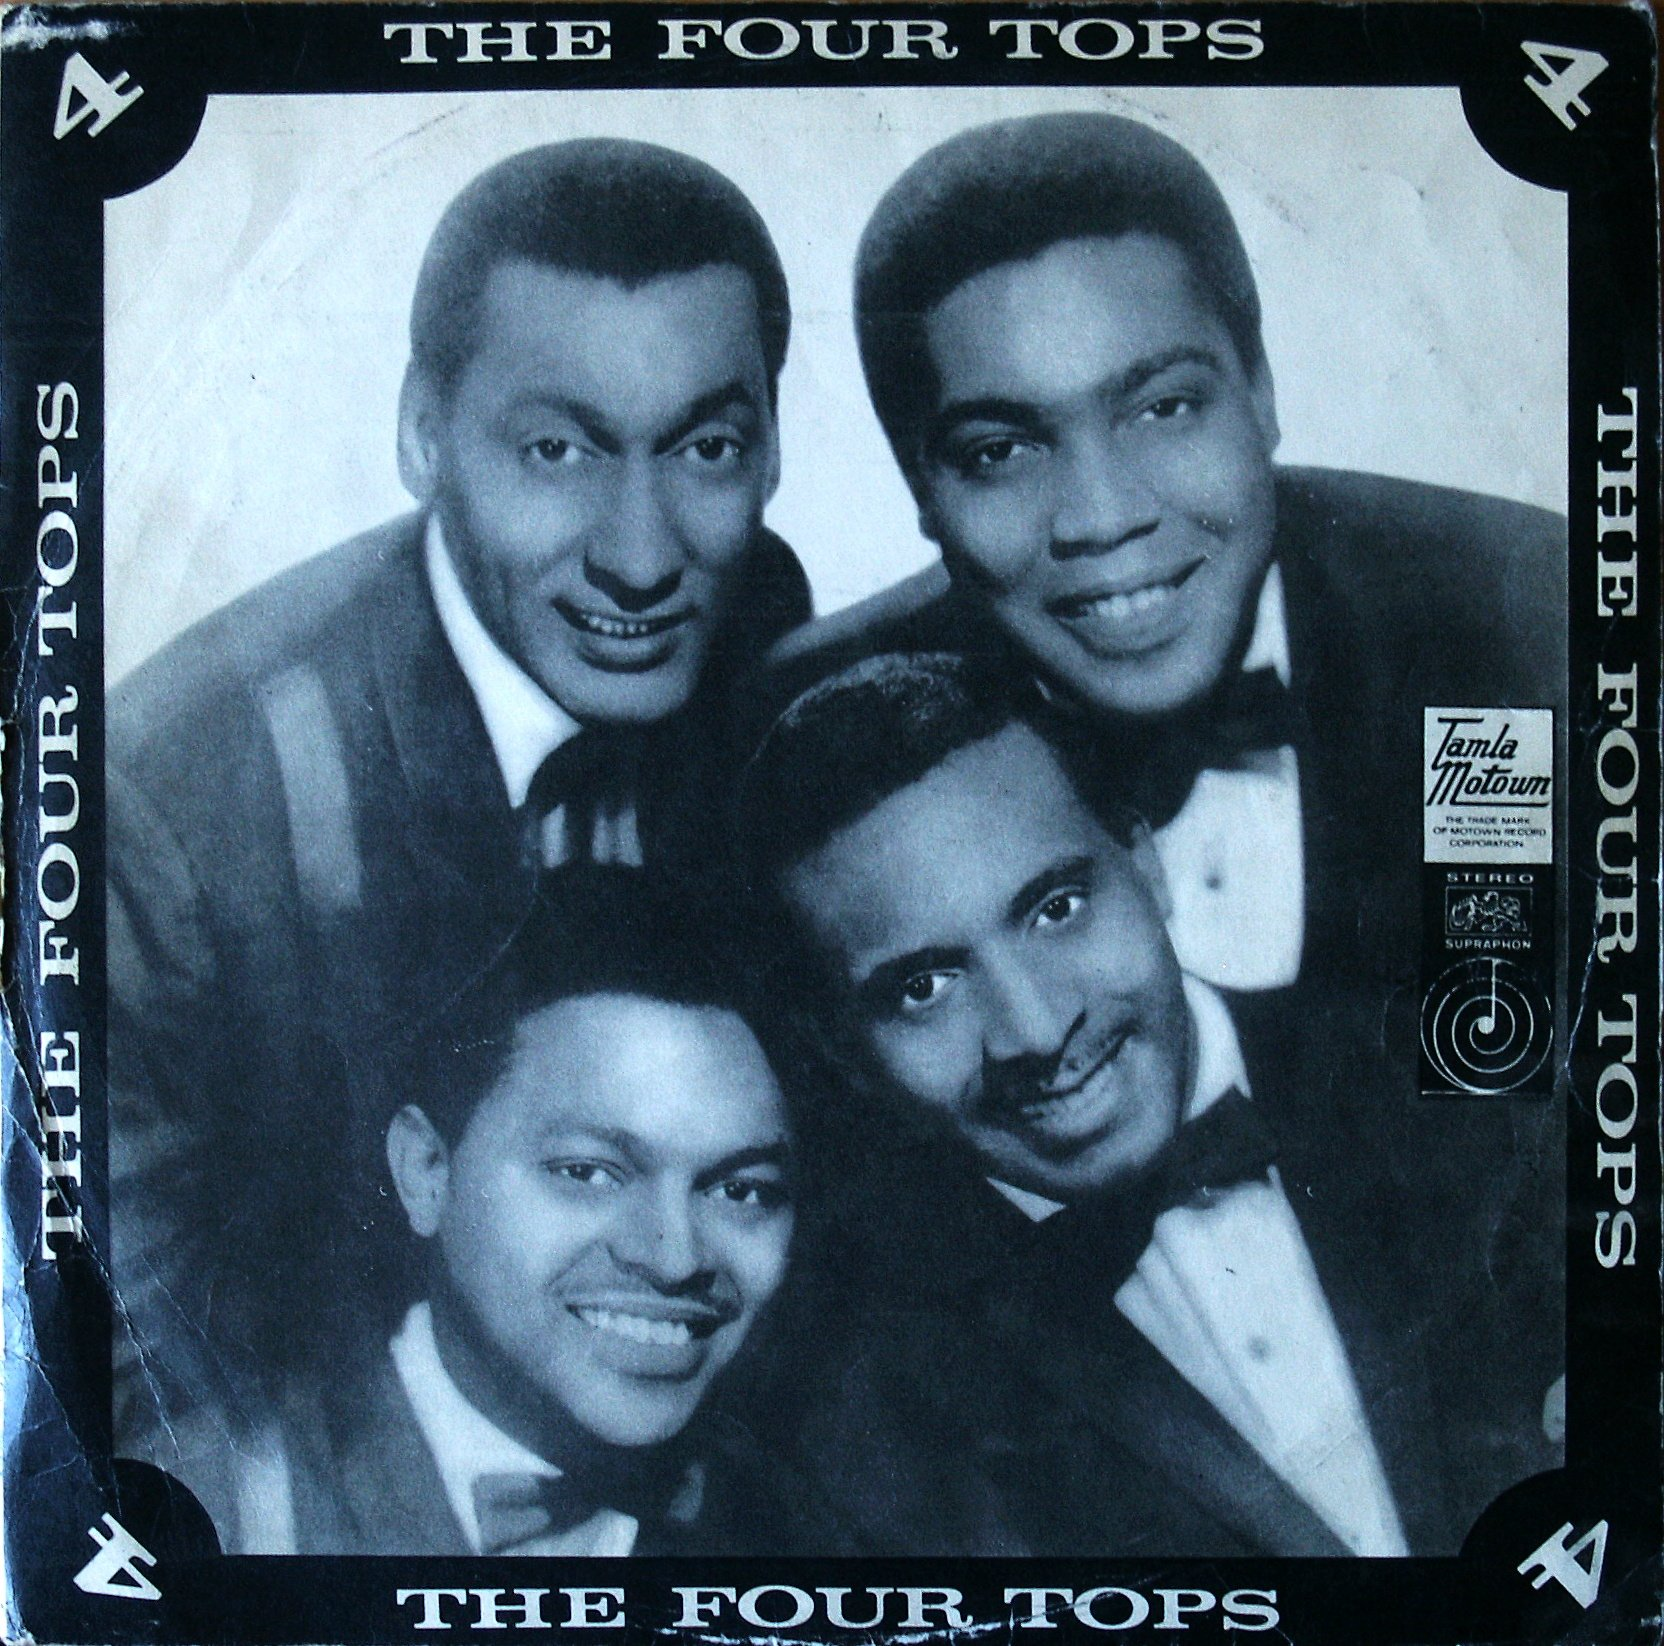 the four tops One of the greatest groups to ever come out of detroit consisted of four singers who made history with their music and their longevity, only being separated by death.